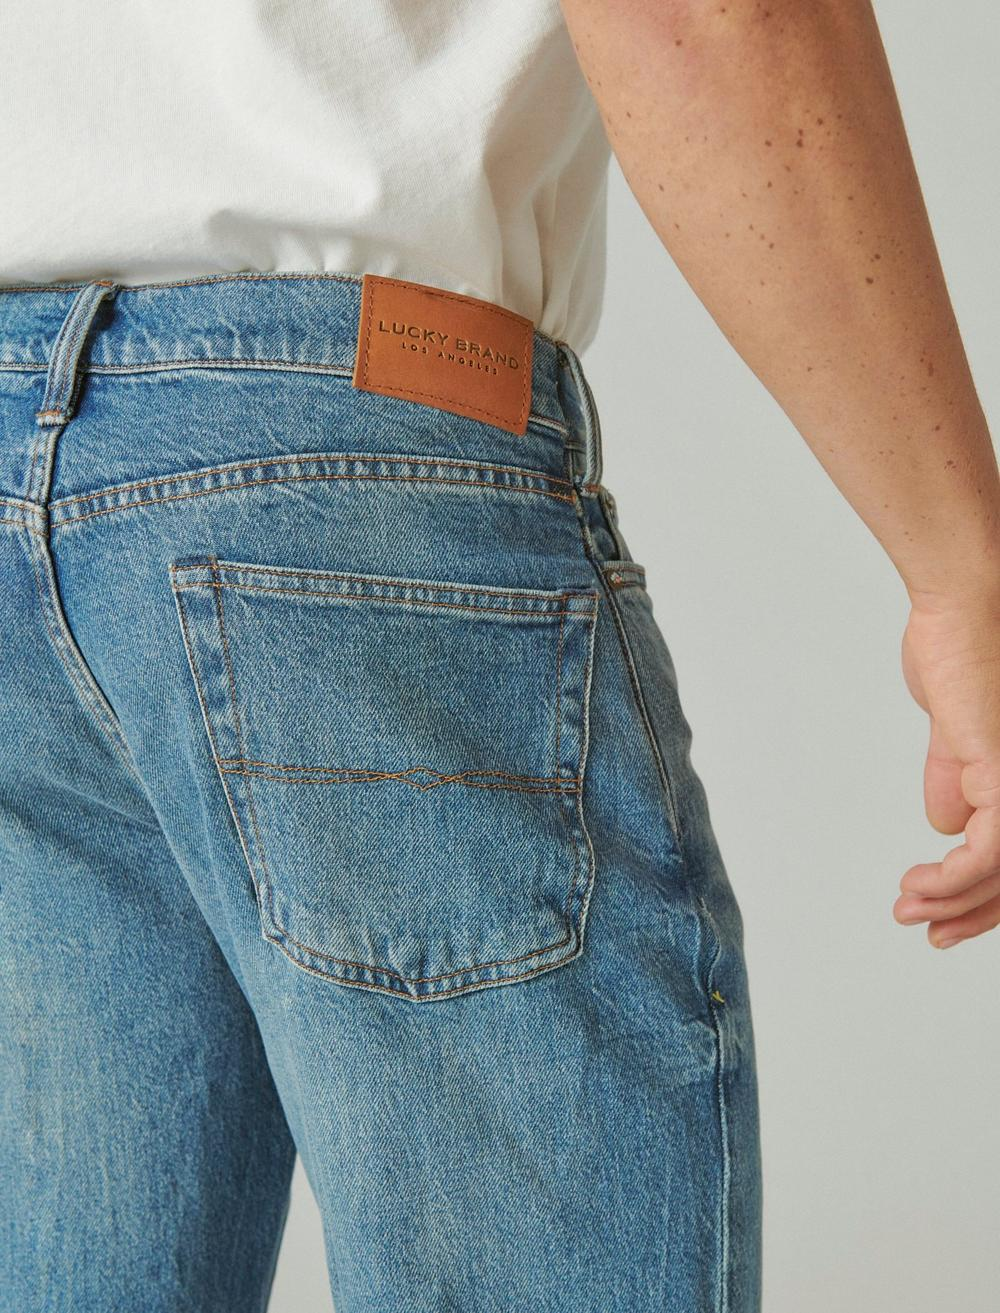 EASY RIDER BOOTCUT JEAN, image 7